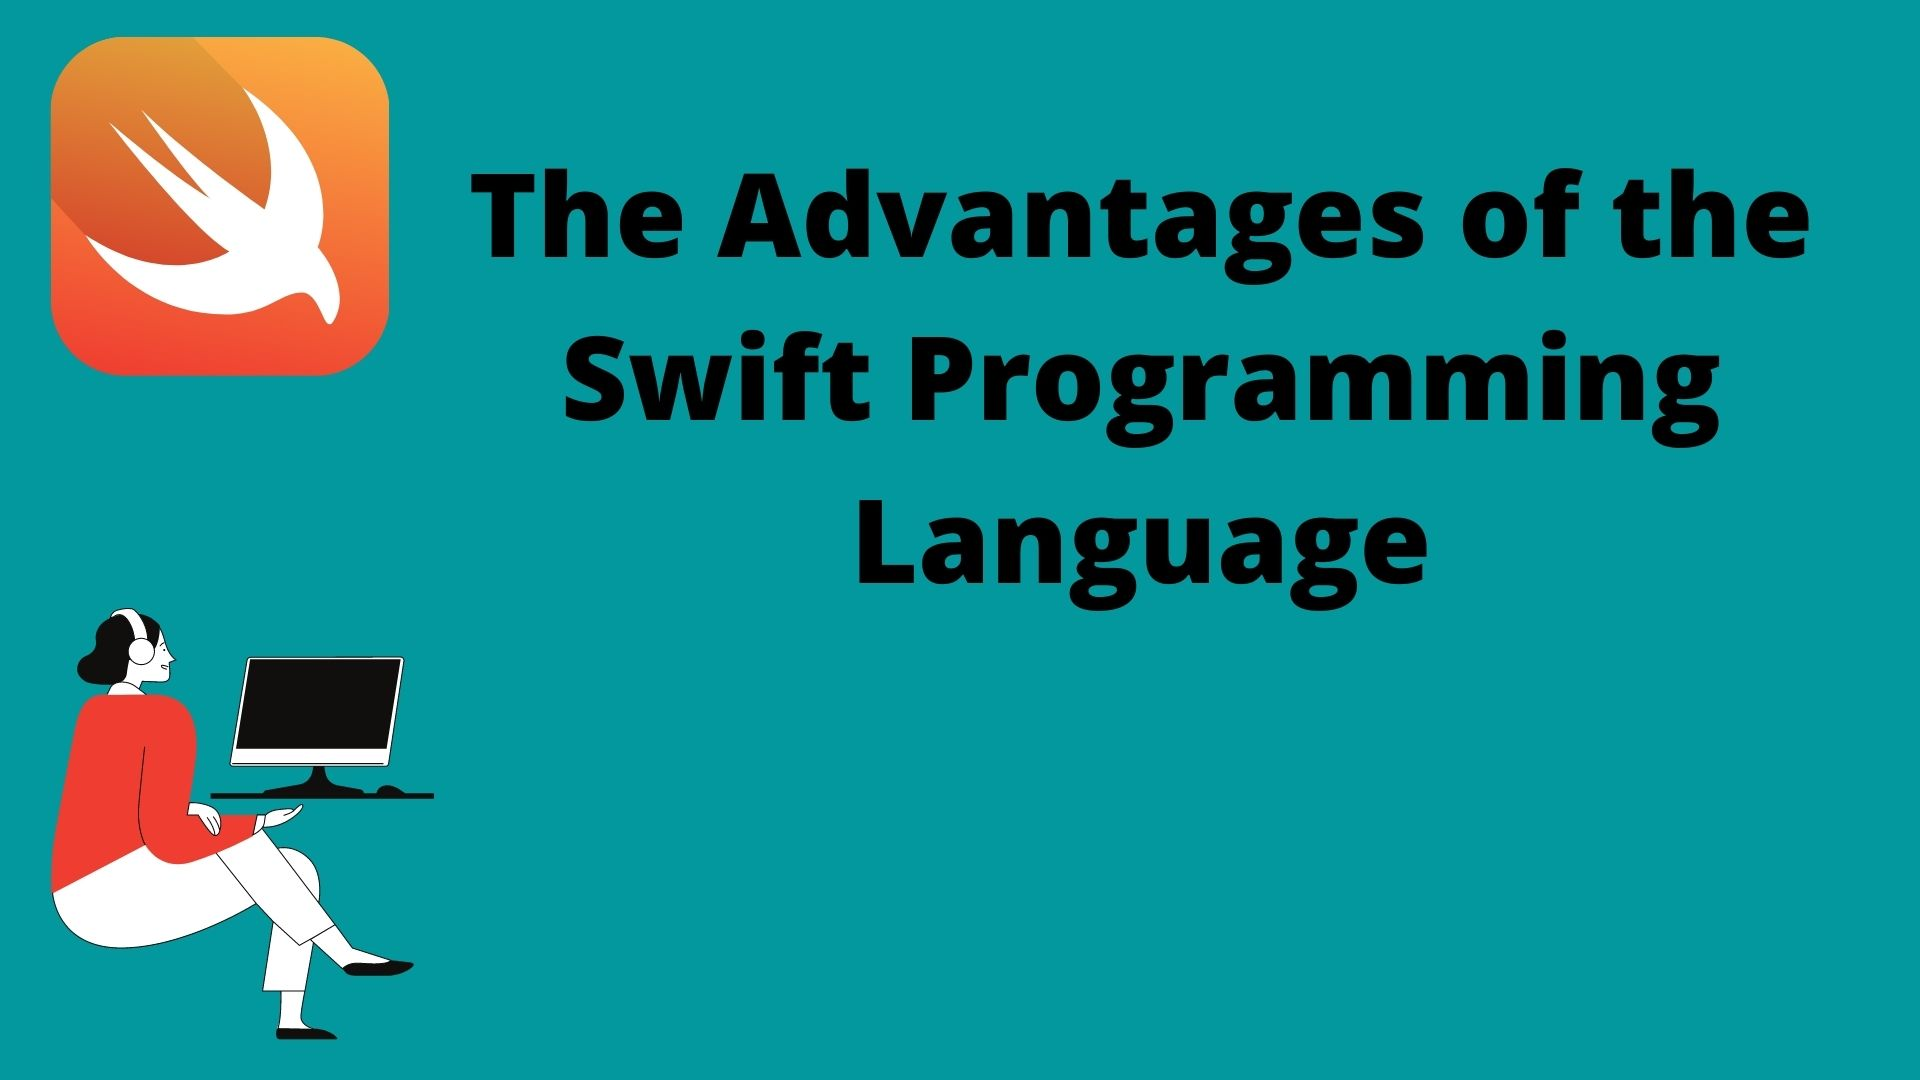 The advantages of the Swift Programming Language